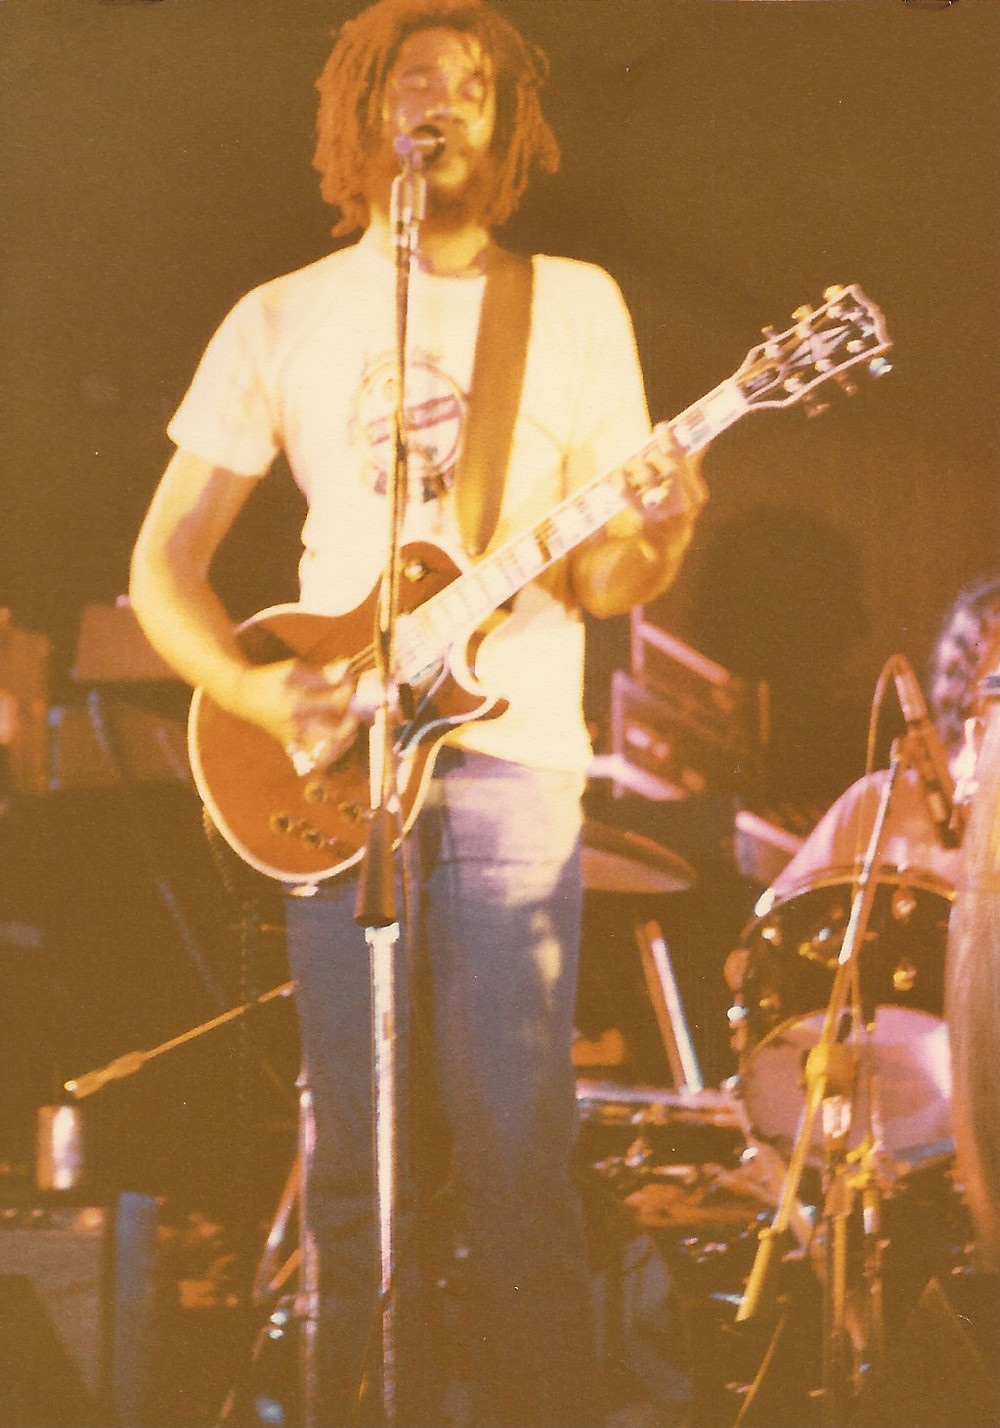 Playing in The I-tal Reggae Band (1980).